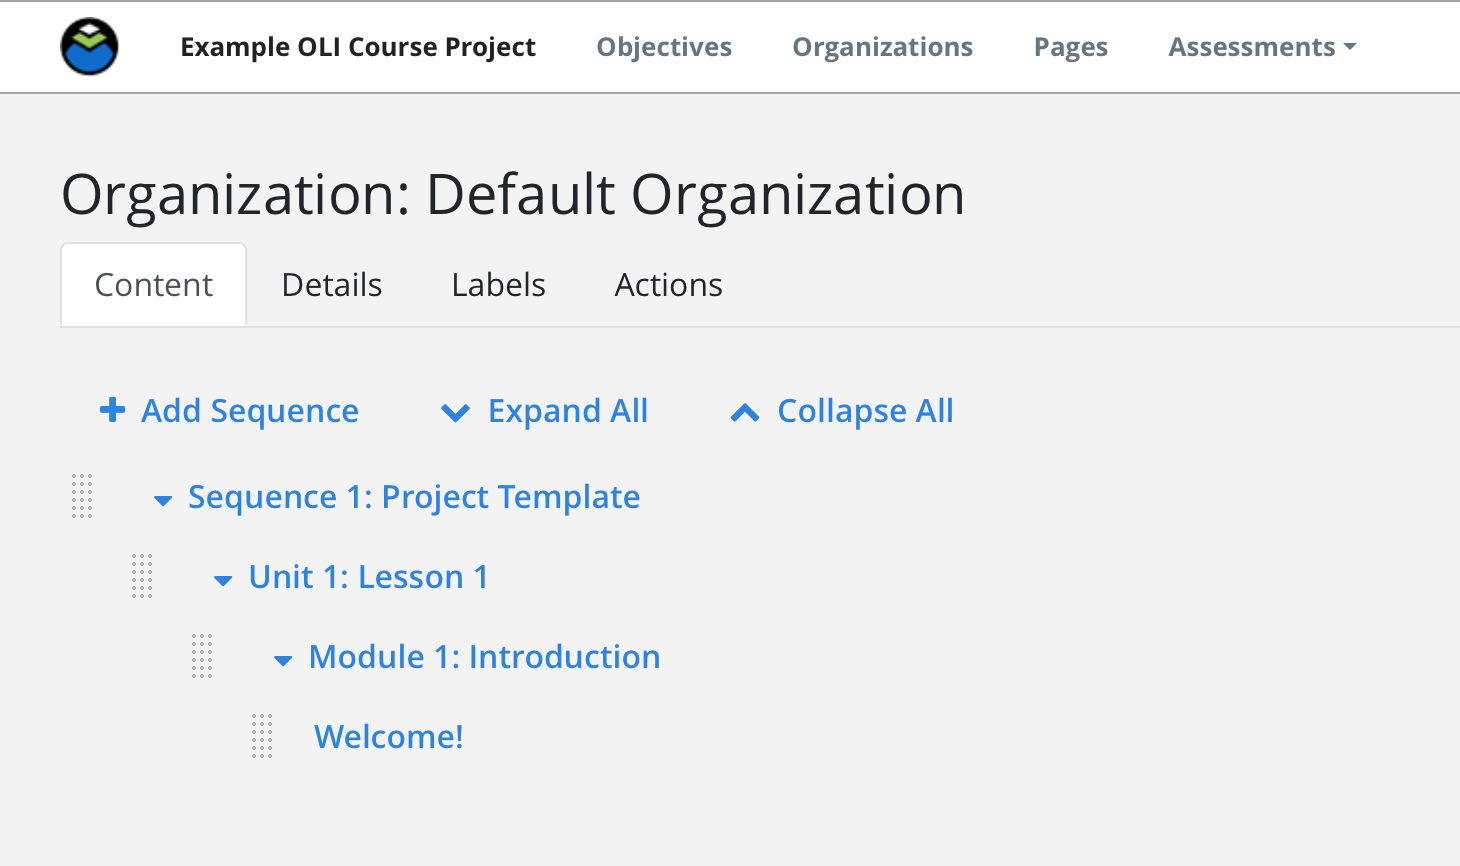 A new, default organization with one sequence, unit, module, and page.